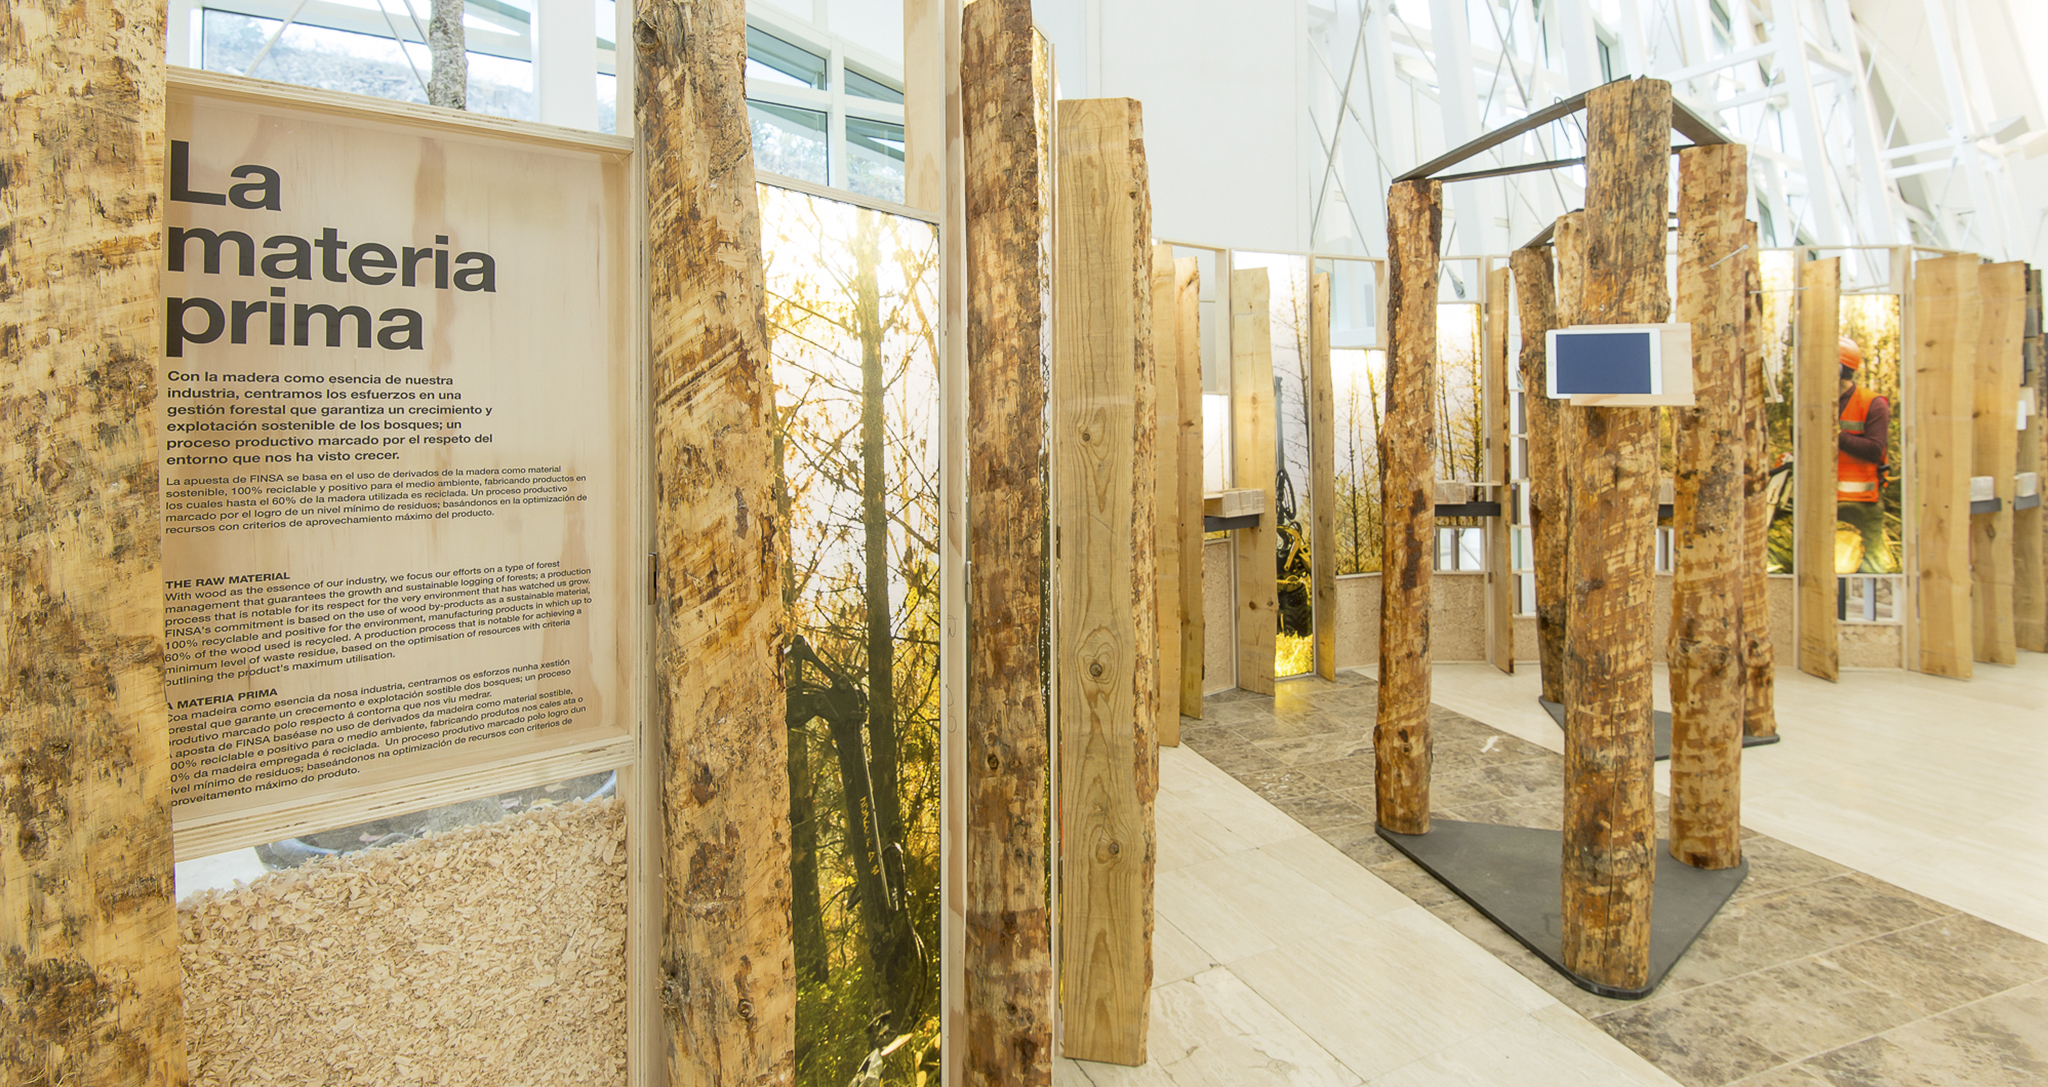 Architecture temporary traveling exhibition City of Culture and FINSA Headquarters in Santiago de Compostela by Rocamora design Elche Alicante Spain